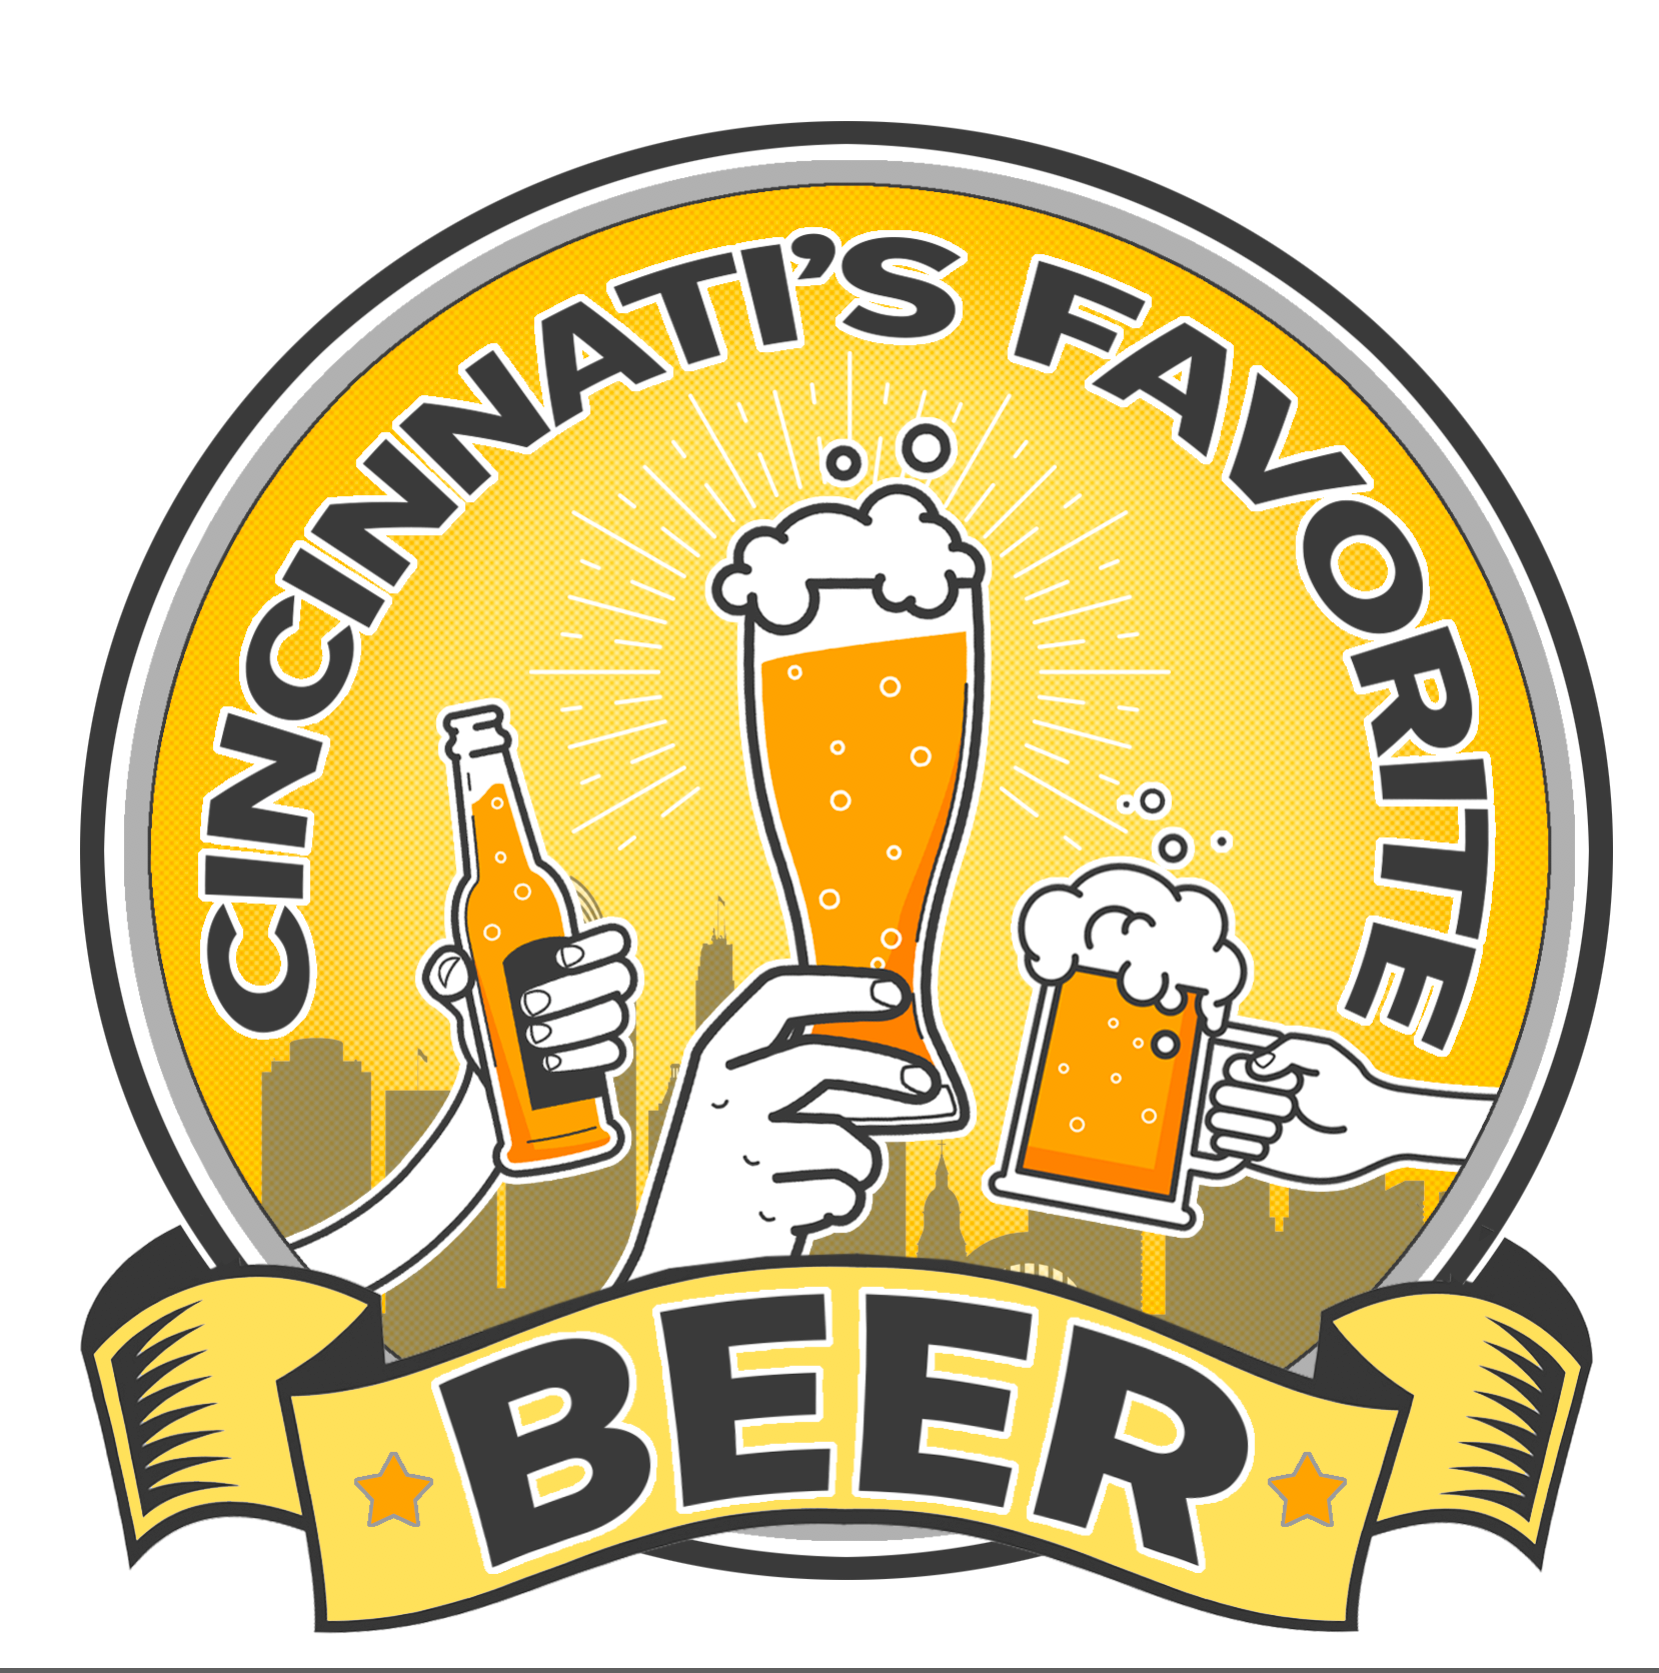 Cincinnati's Favorite Beer finalists revealed, voting open through Tuesday